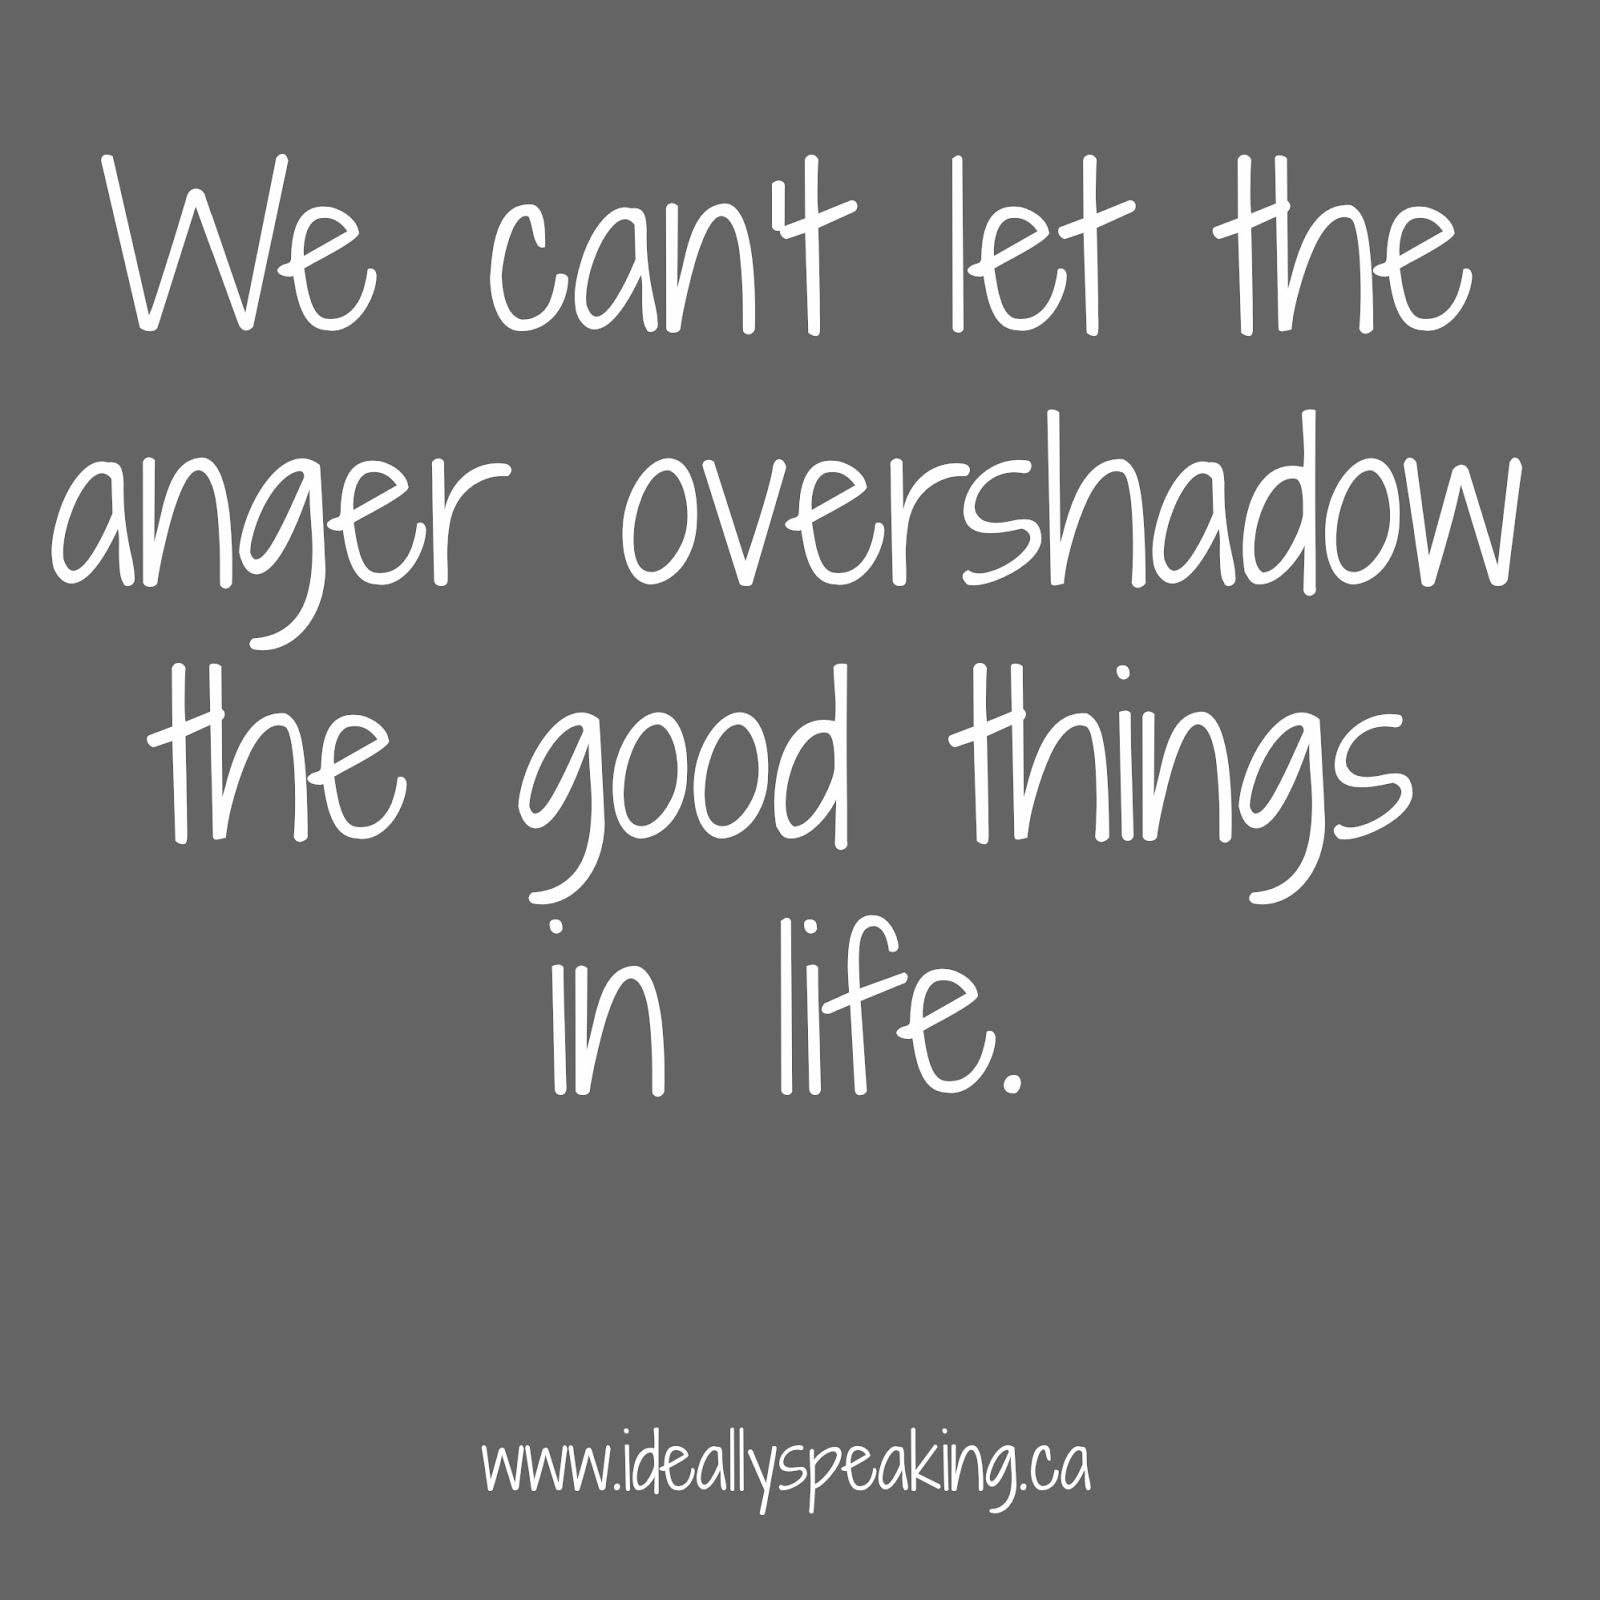 Good Quotes About Life Ideally Quotable Anger And The Good Things In Life Ideally